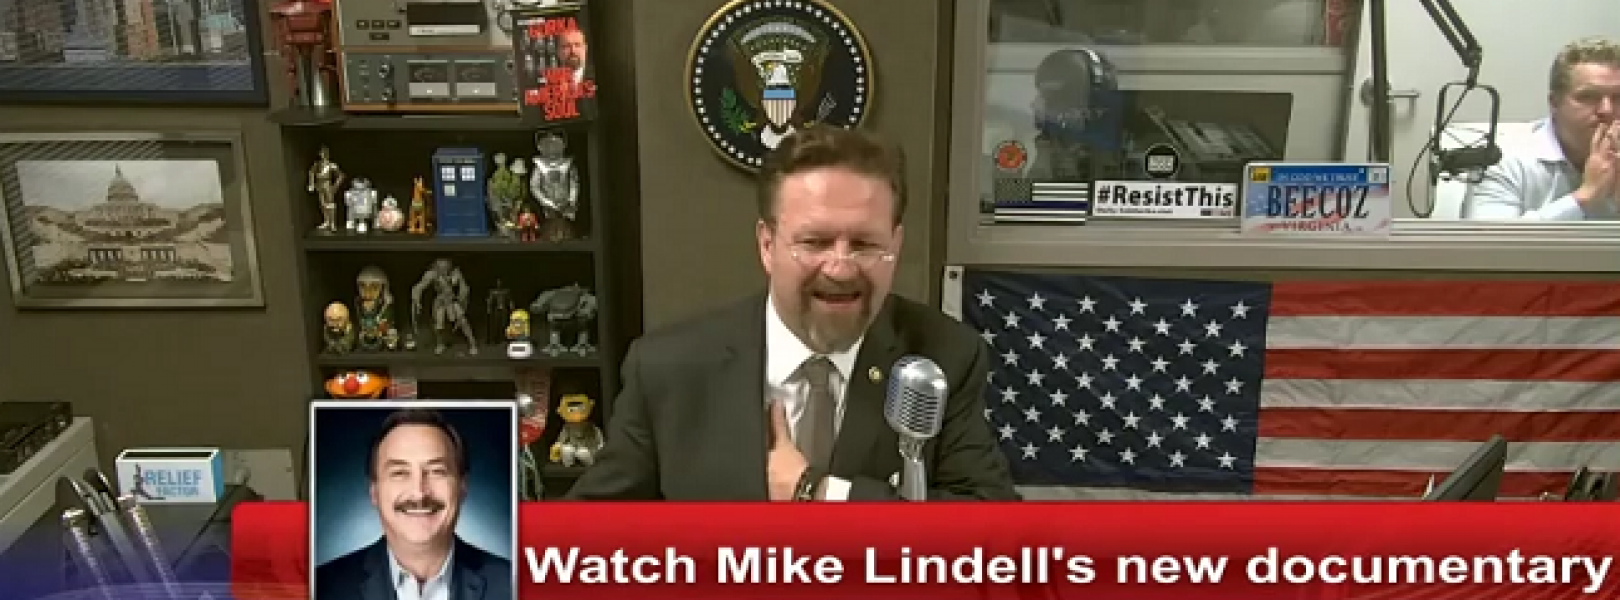 "On YouTube, Seb Gorka promotes Mike Lindell's disinformation ""documentary"" that has been banned by YouTube"